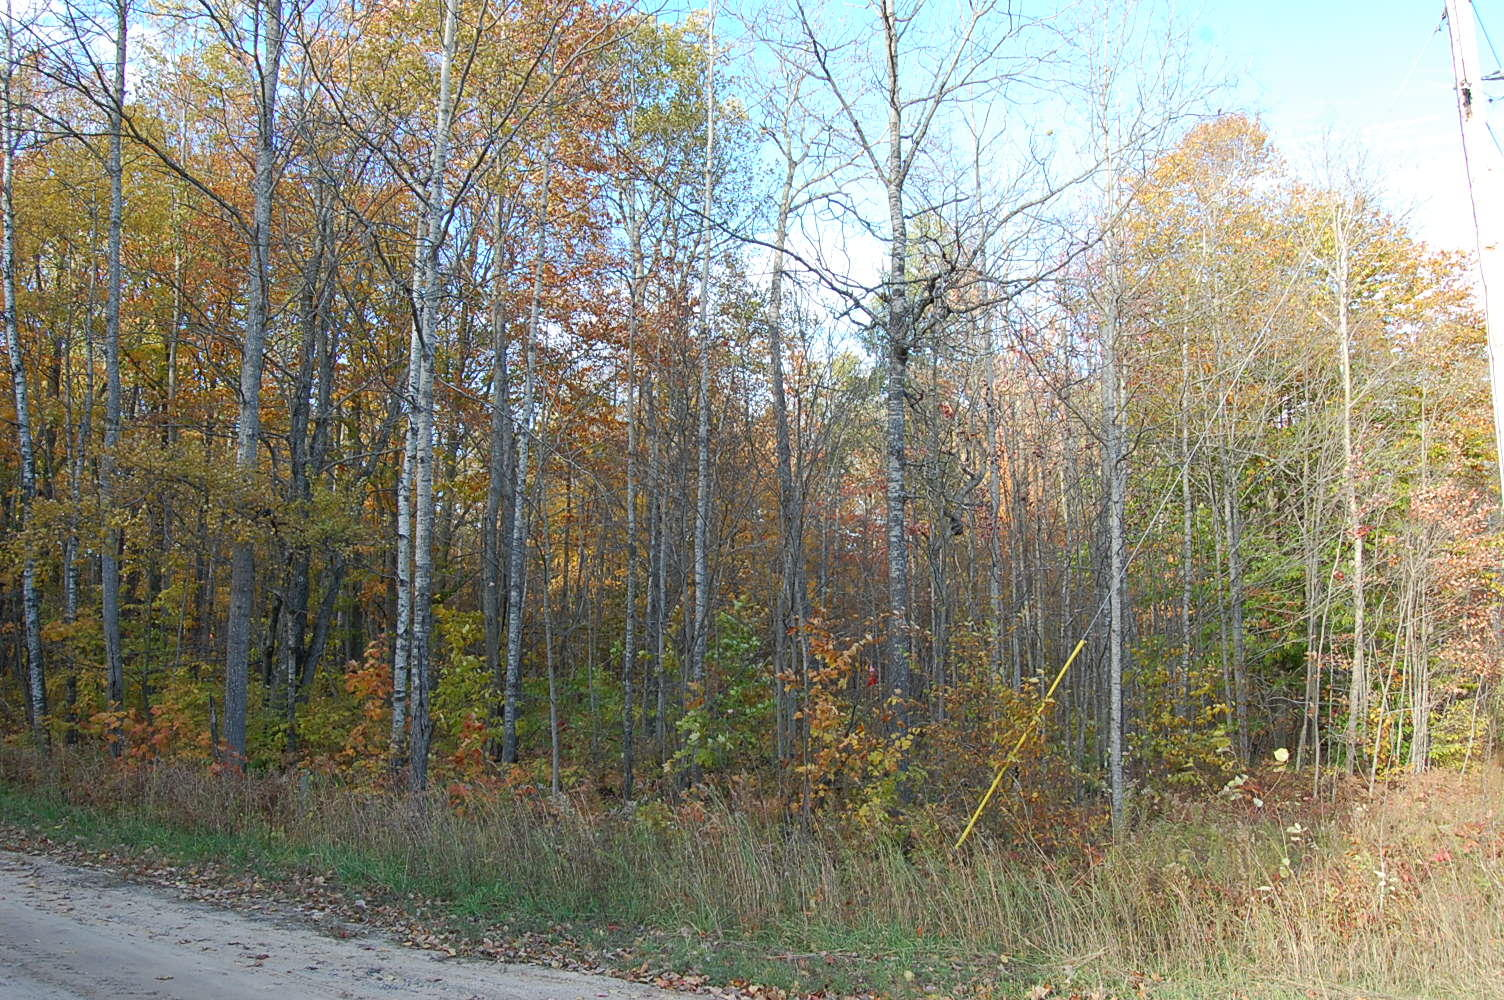 More than Half Acre in Picturesque Michigan - Image 4